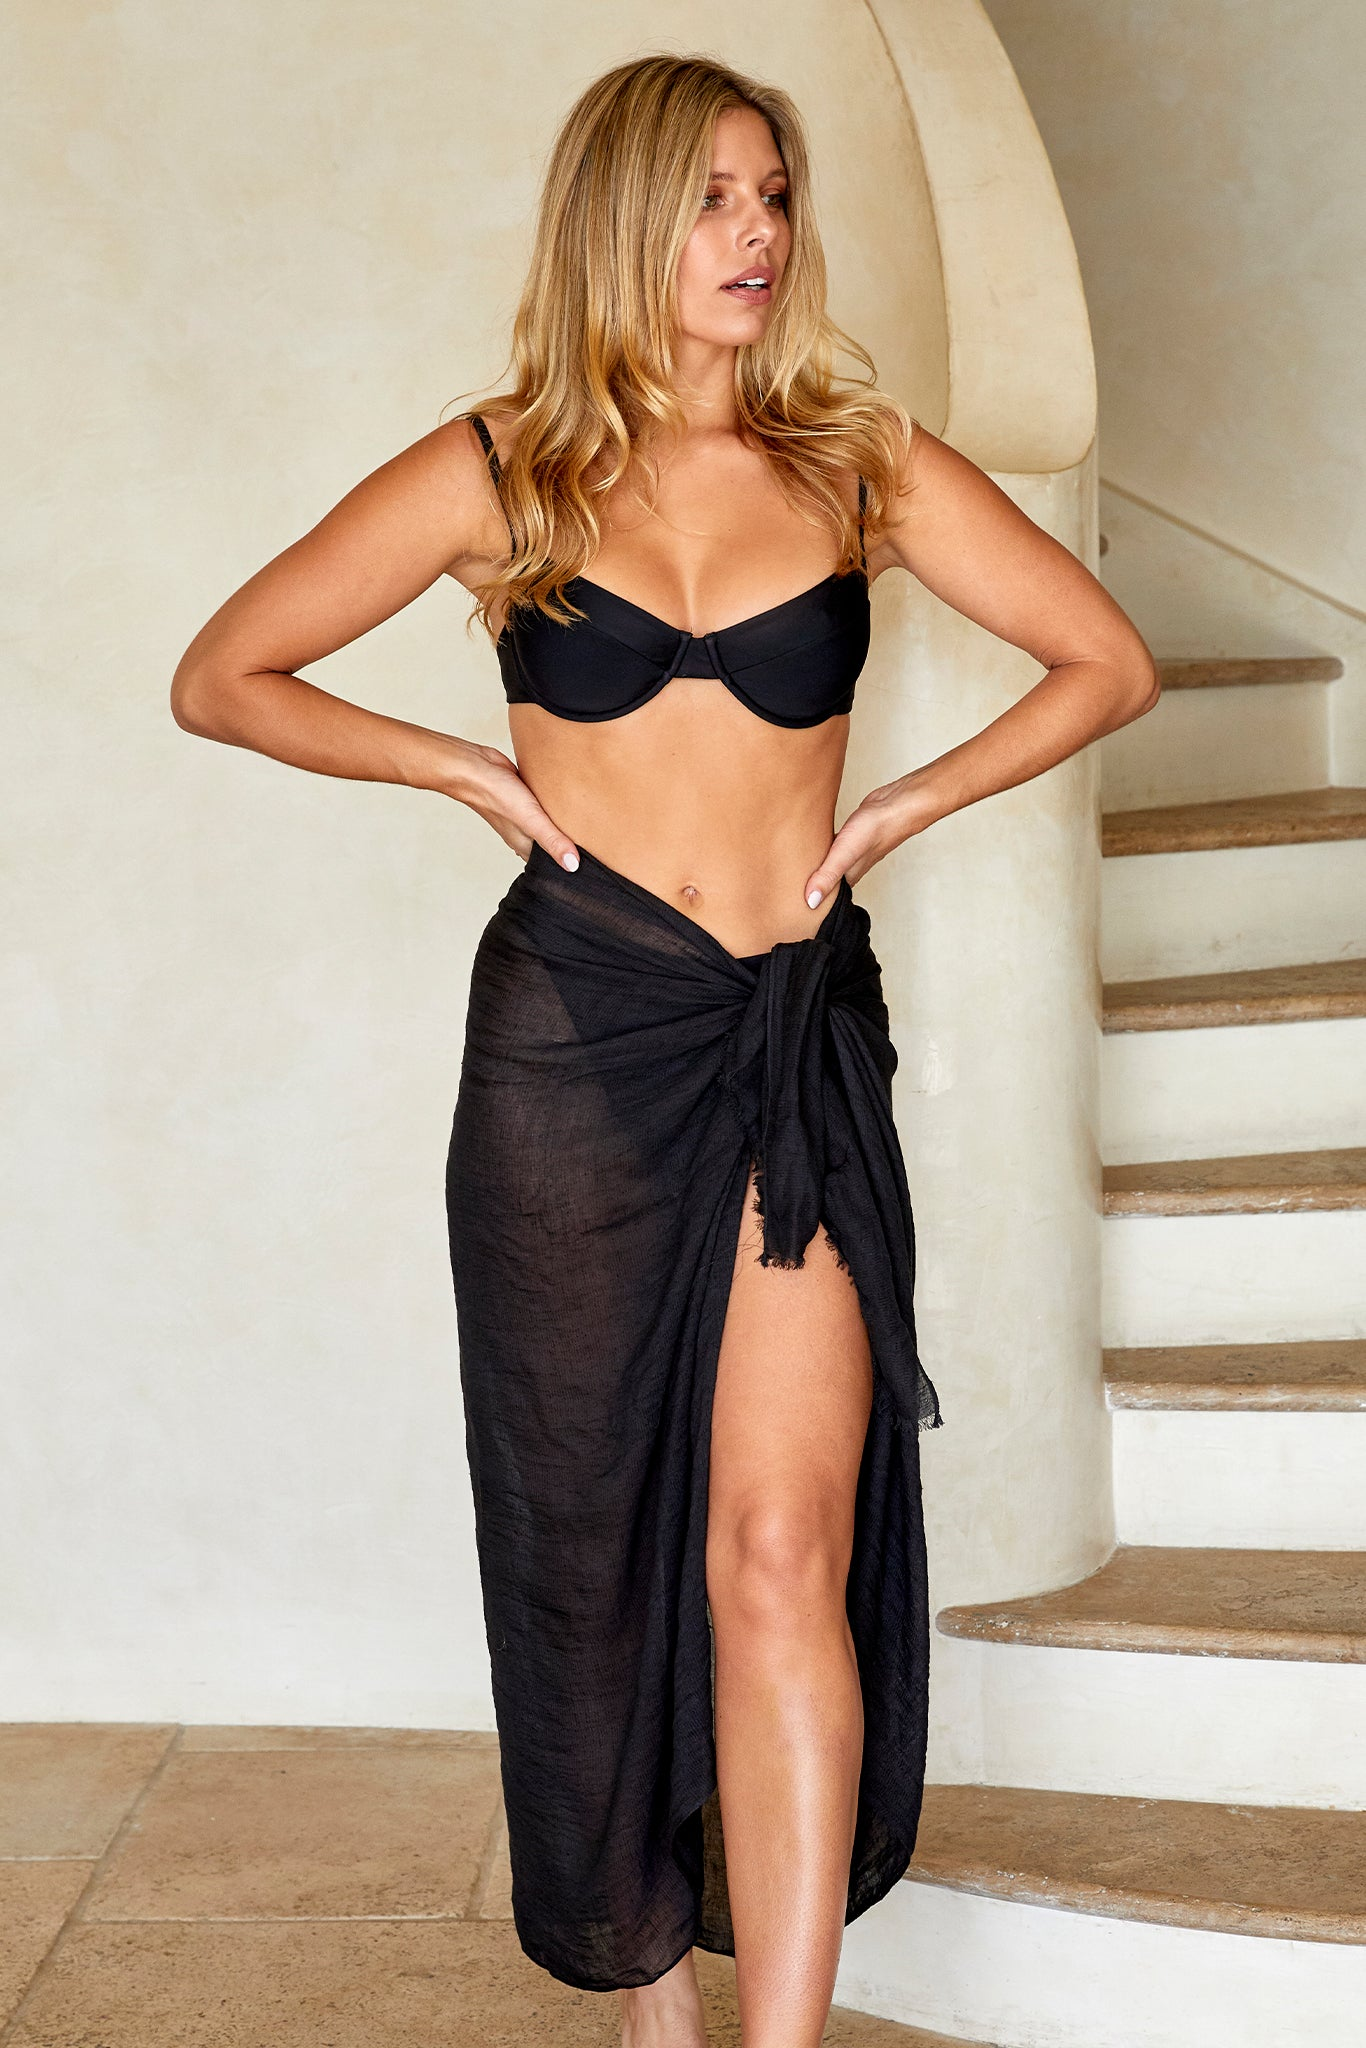 Load image into Gallery viewer, St. Tropez Sarong - Black